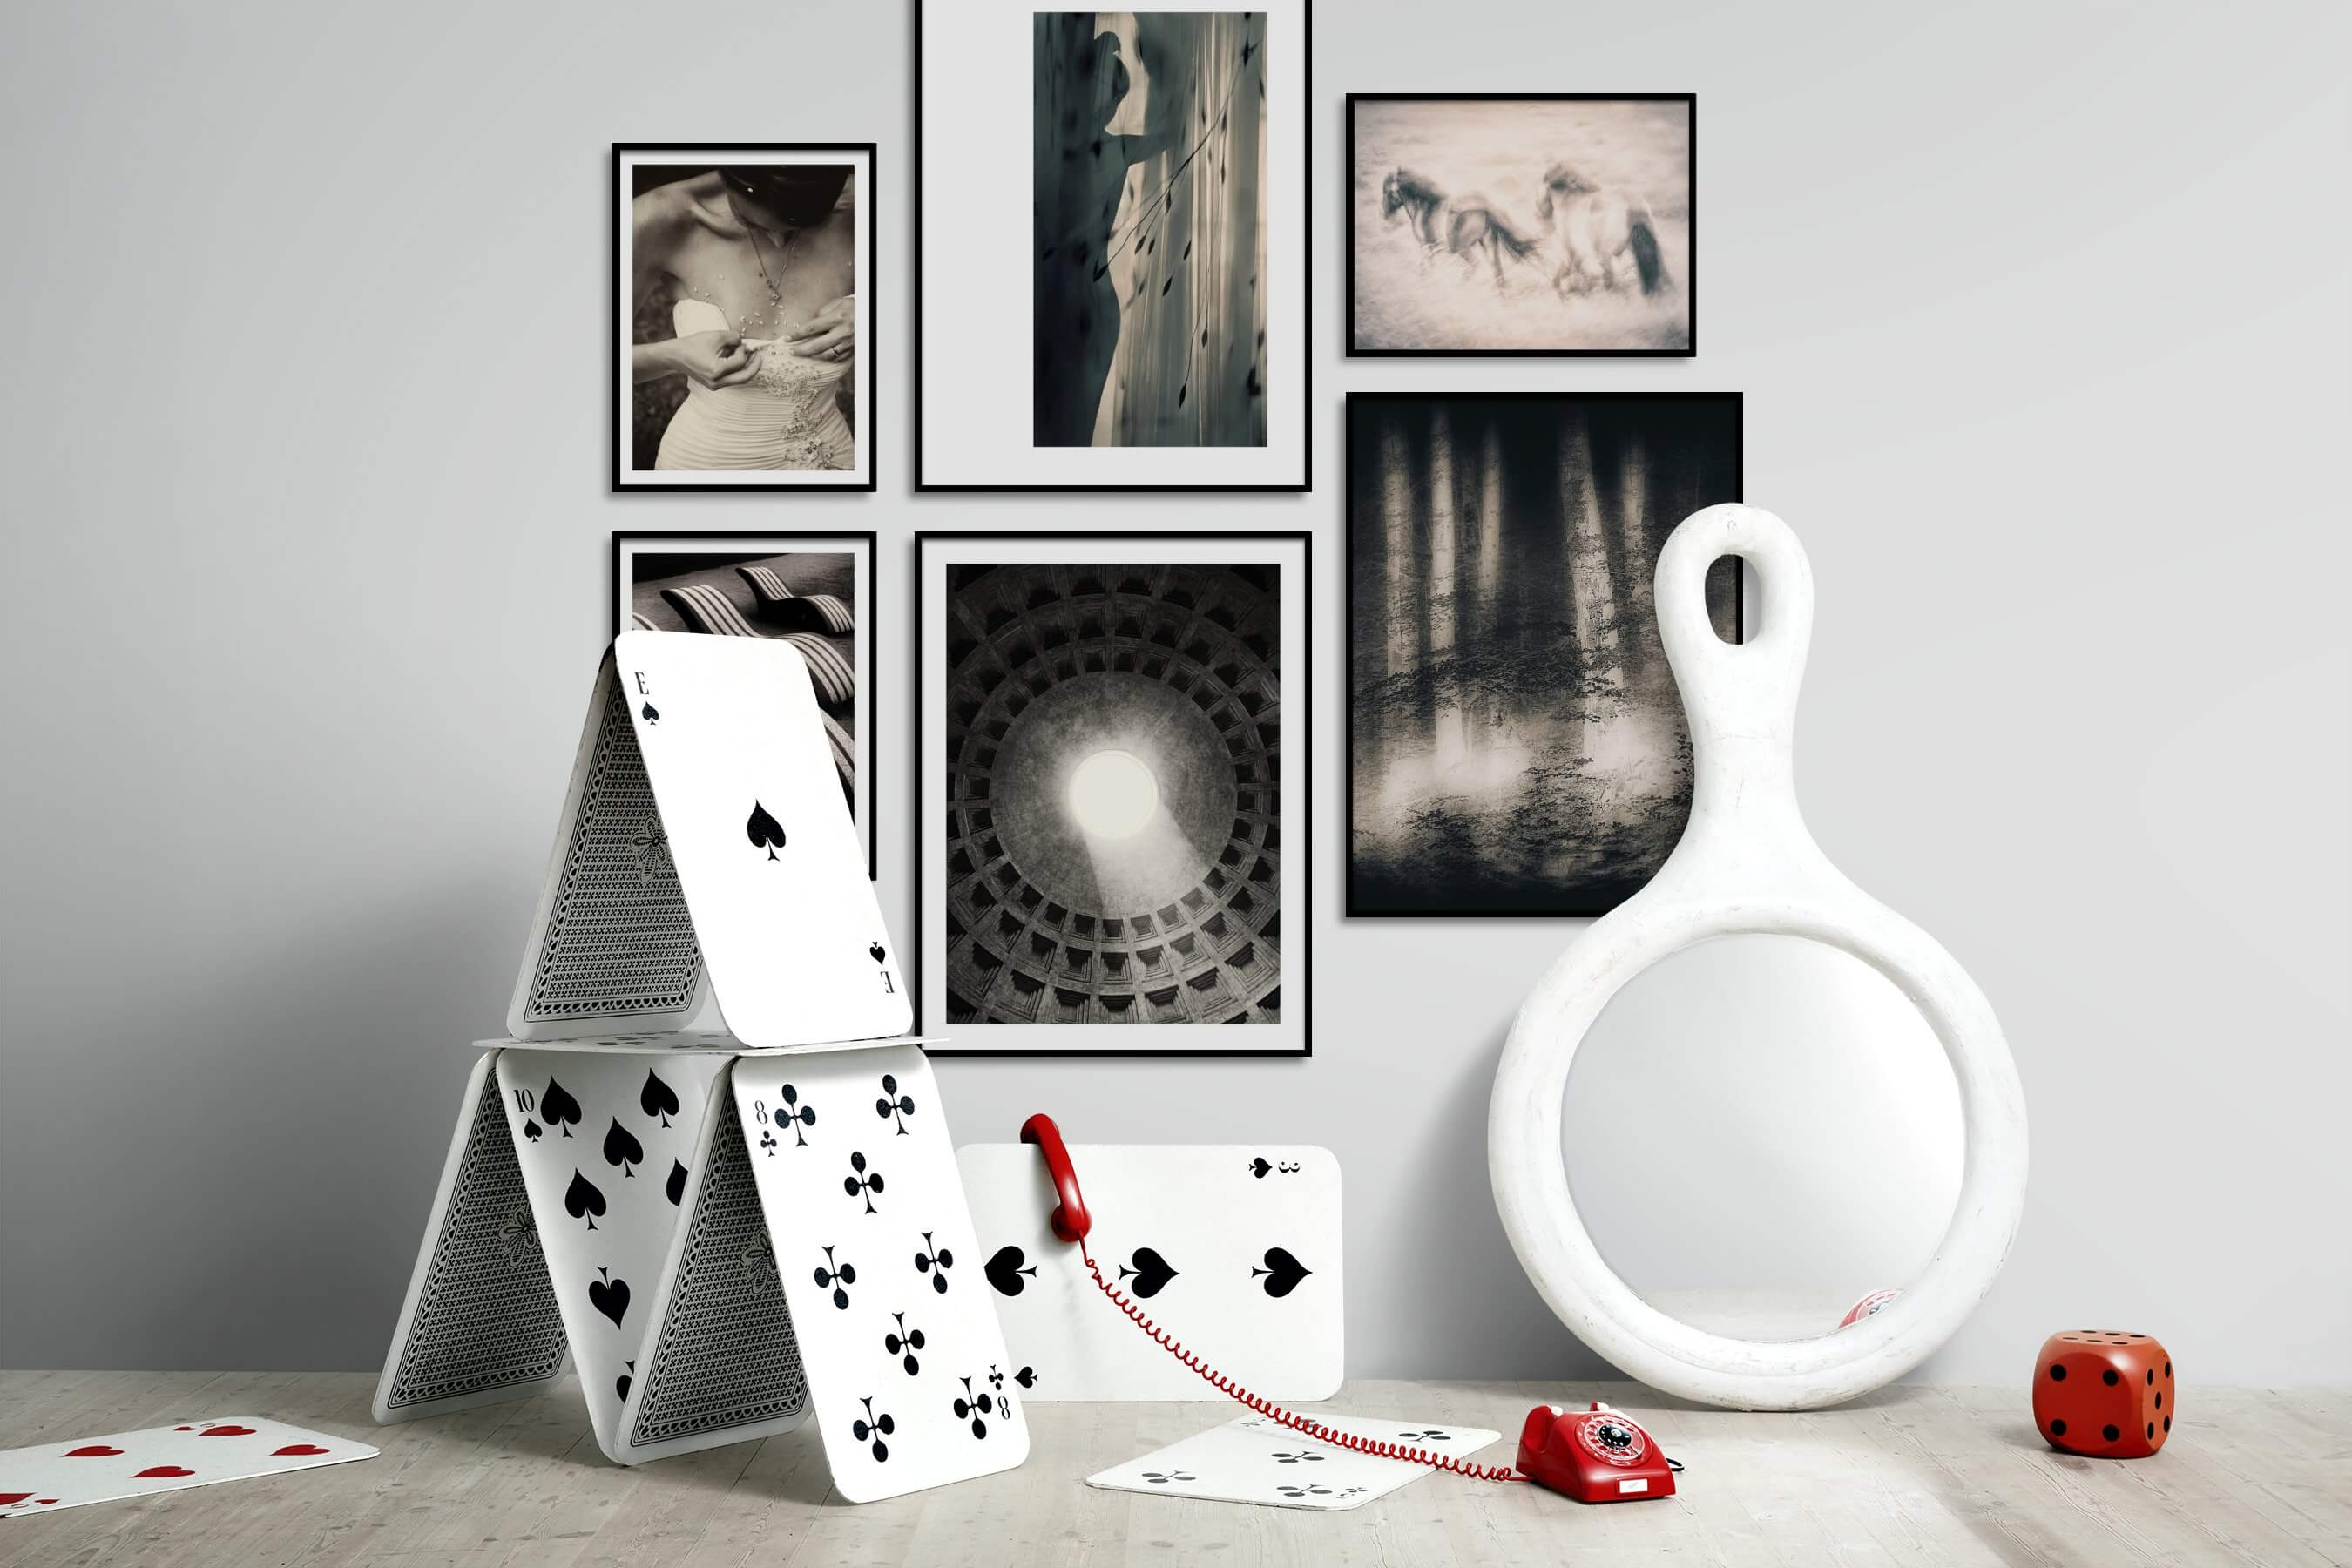 Gallery wall idea with six framed pictures arranged on a wall depicting Fashion & Beauty, Black & White, For the Moderate, Animals, Country Life, and Nature